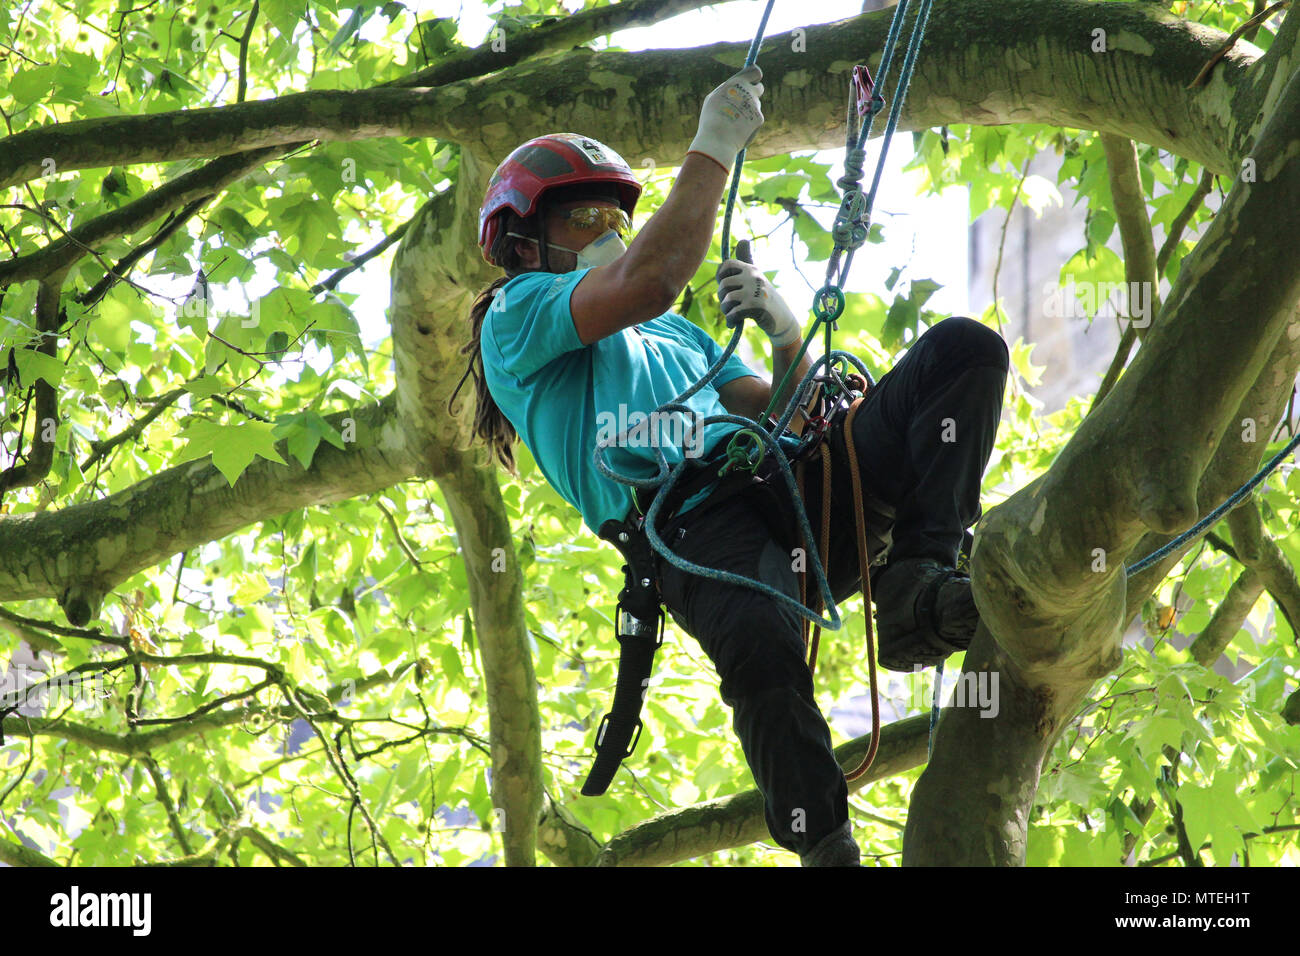 MECHELEN, BELGIUM, 26 MAY 2018: Action shot of unknown competitor climbing at the Belgian Tree Climbing Championships in Bonheiden near Mechelen. - Stock Image